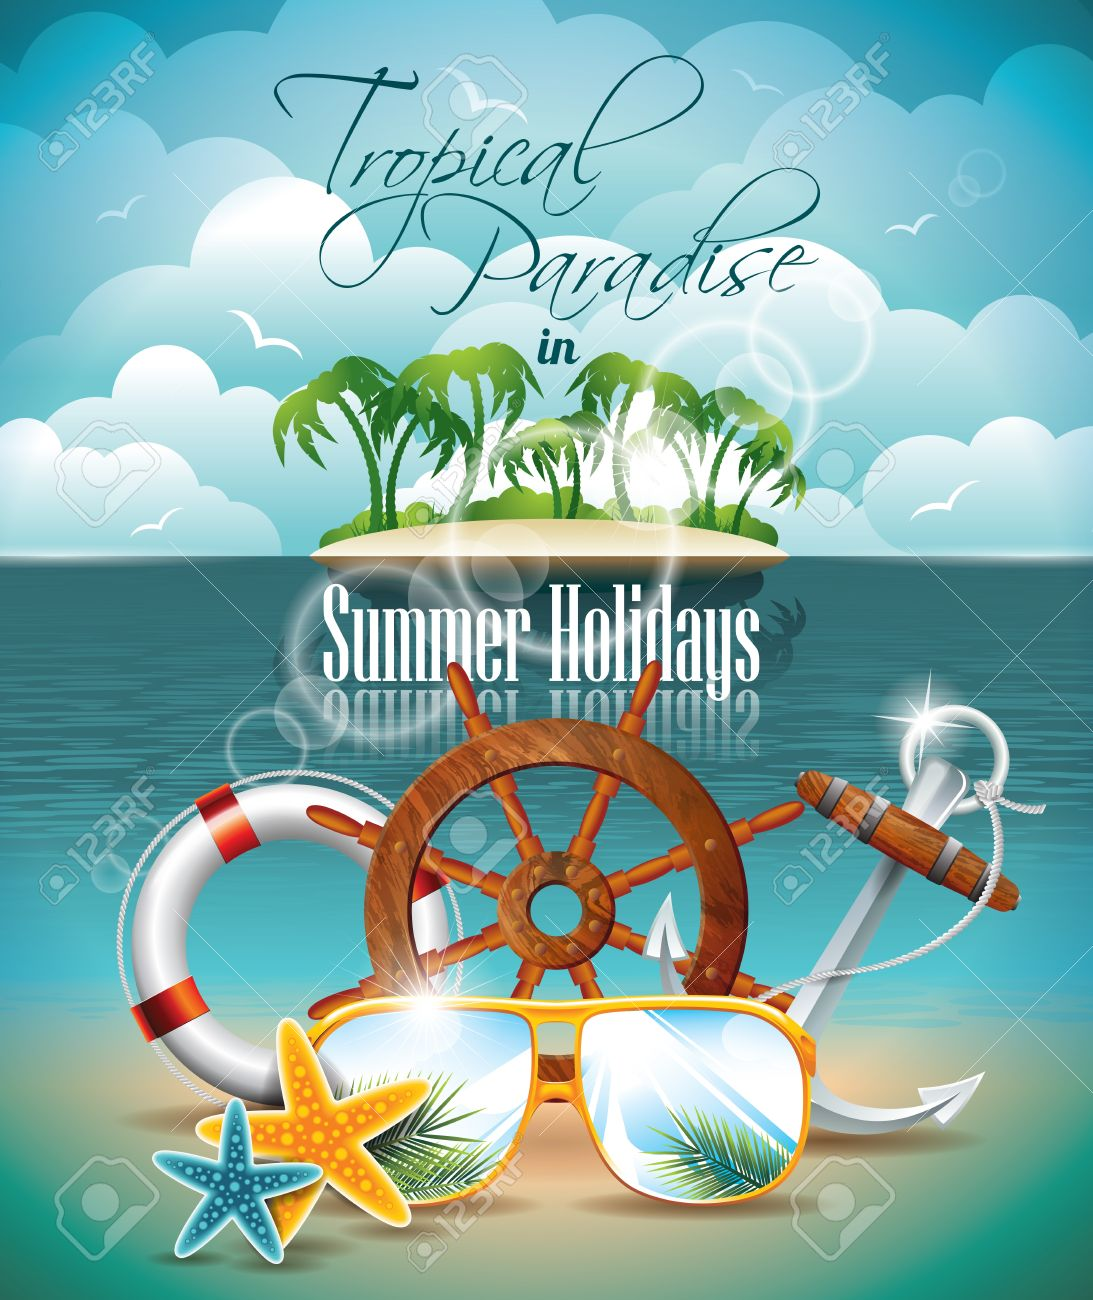 summer holiday flyer design with palm trees and shipping elements on tropical background stock vector